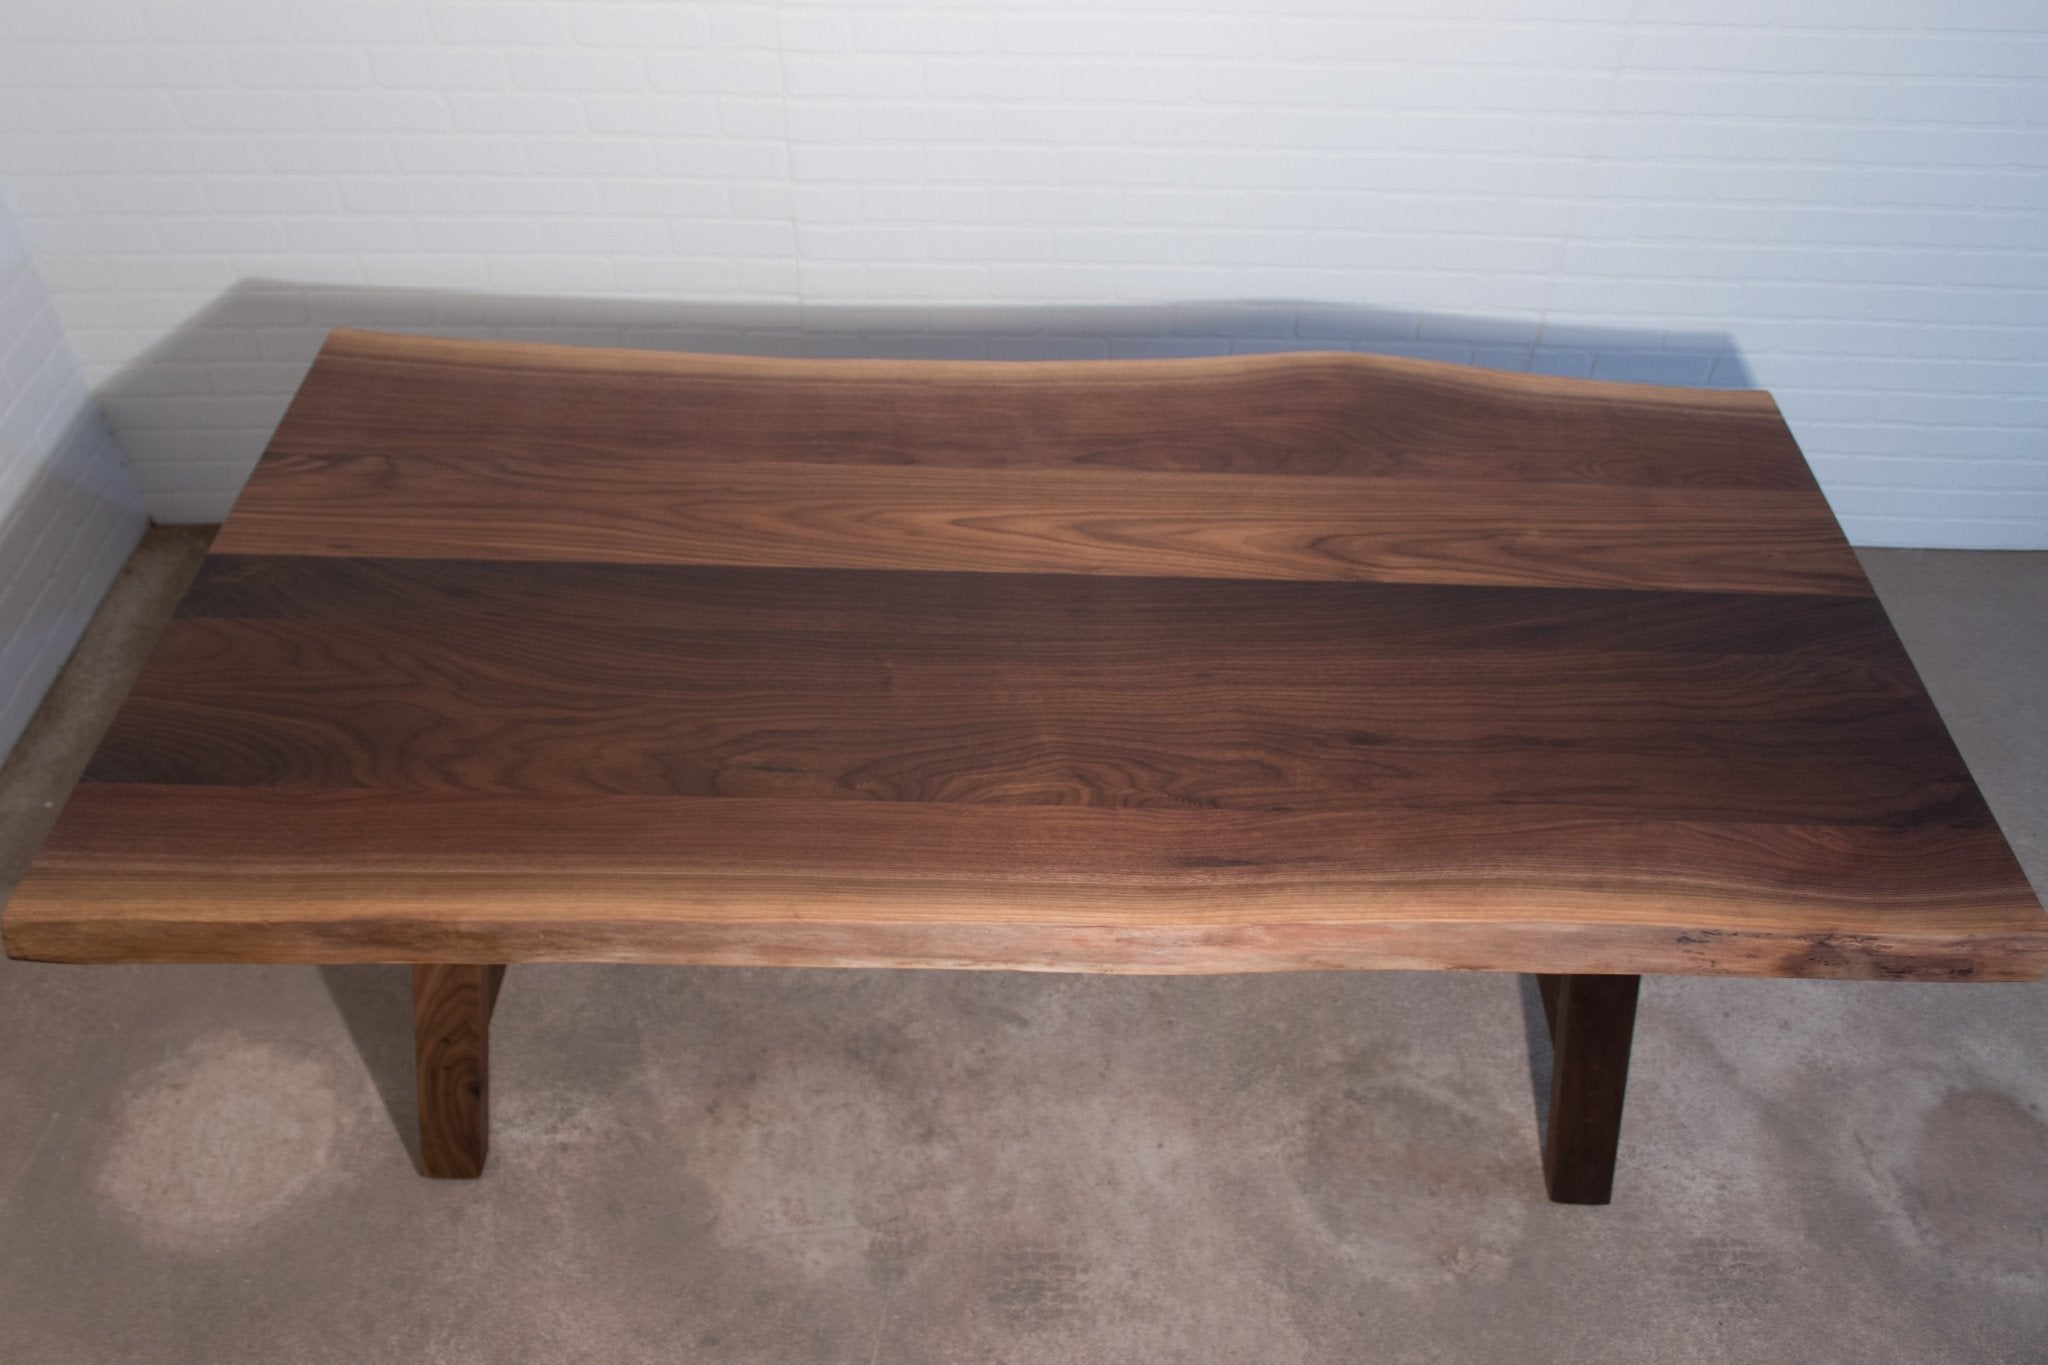 Live Edge Walnut Table on Walnut H Legs - Loewen Design Studios